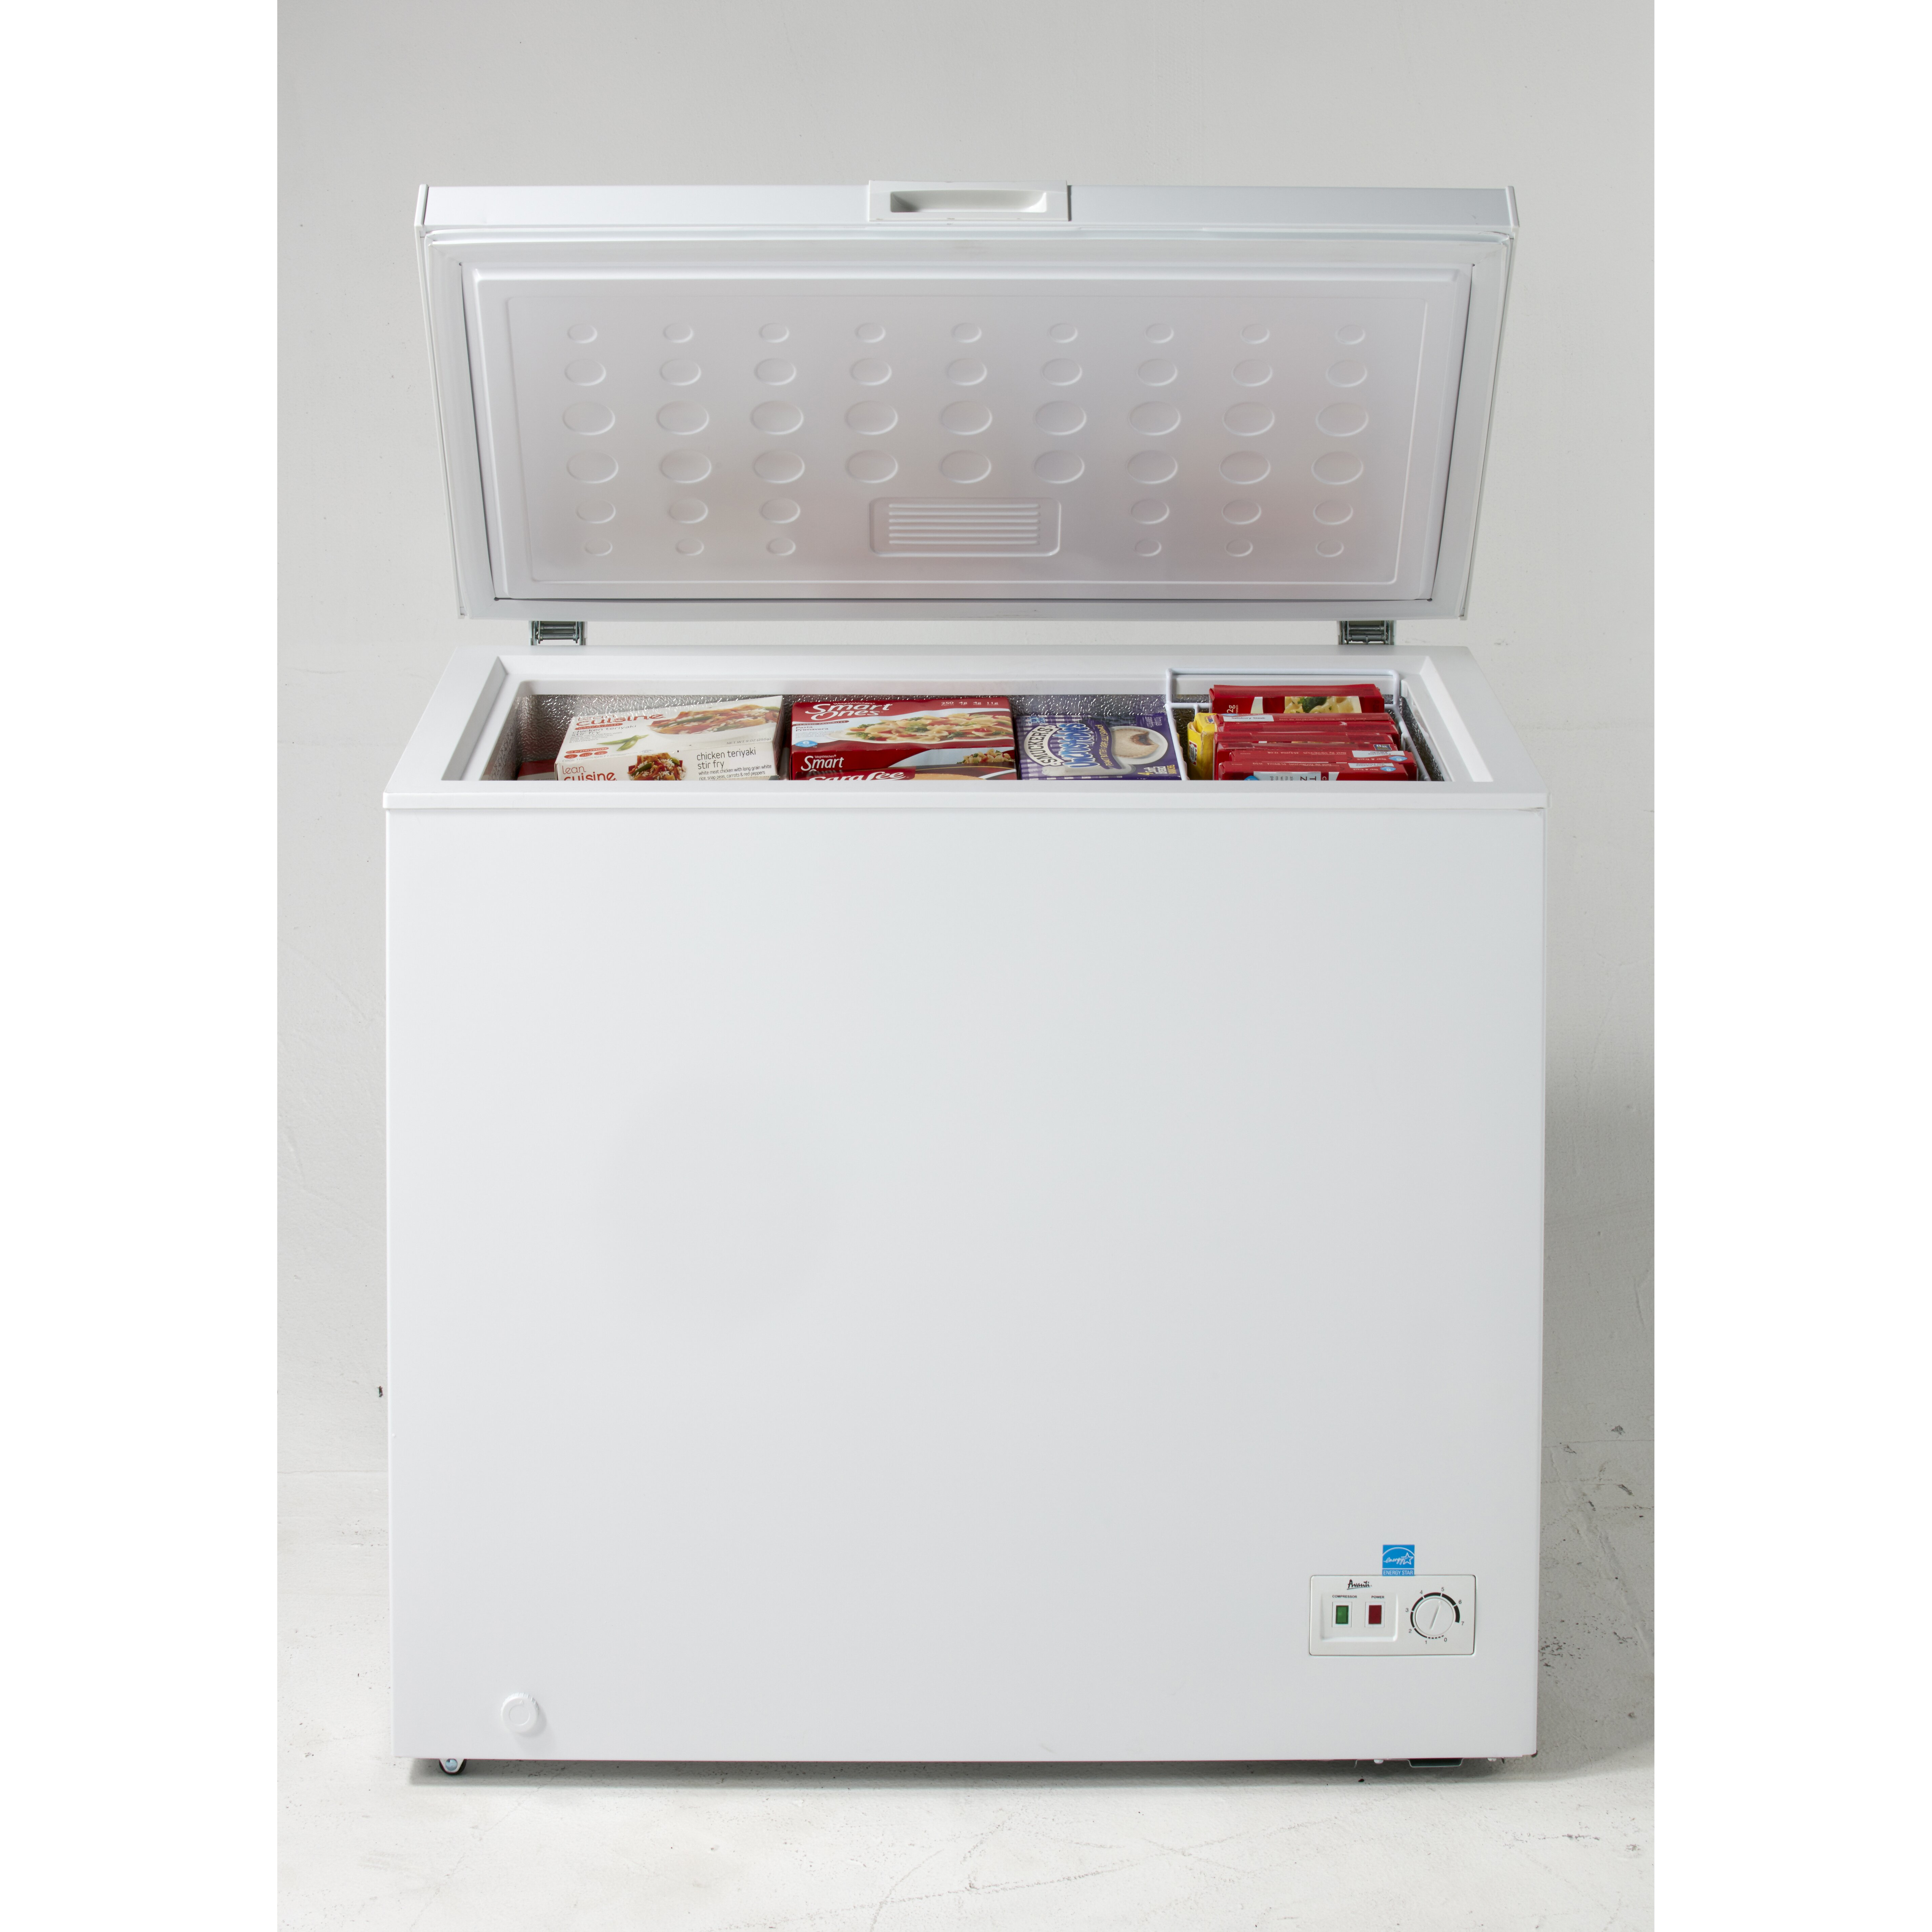 7 Cu Ft Chest Freezer Pictures to Pin on Pinterest - PinsDaddy